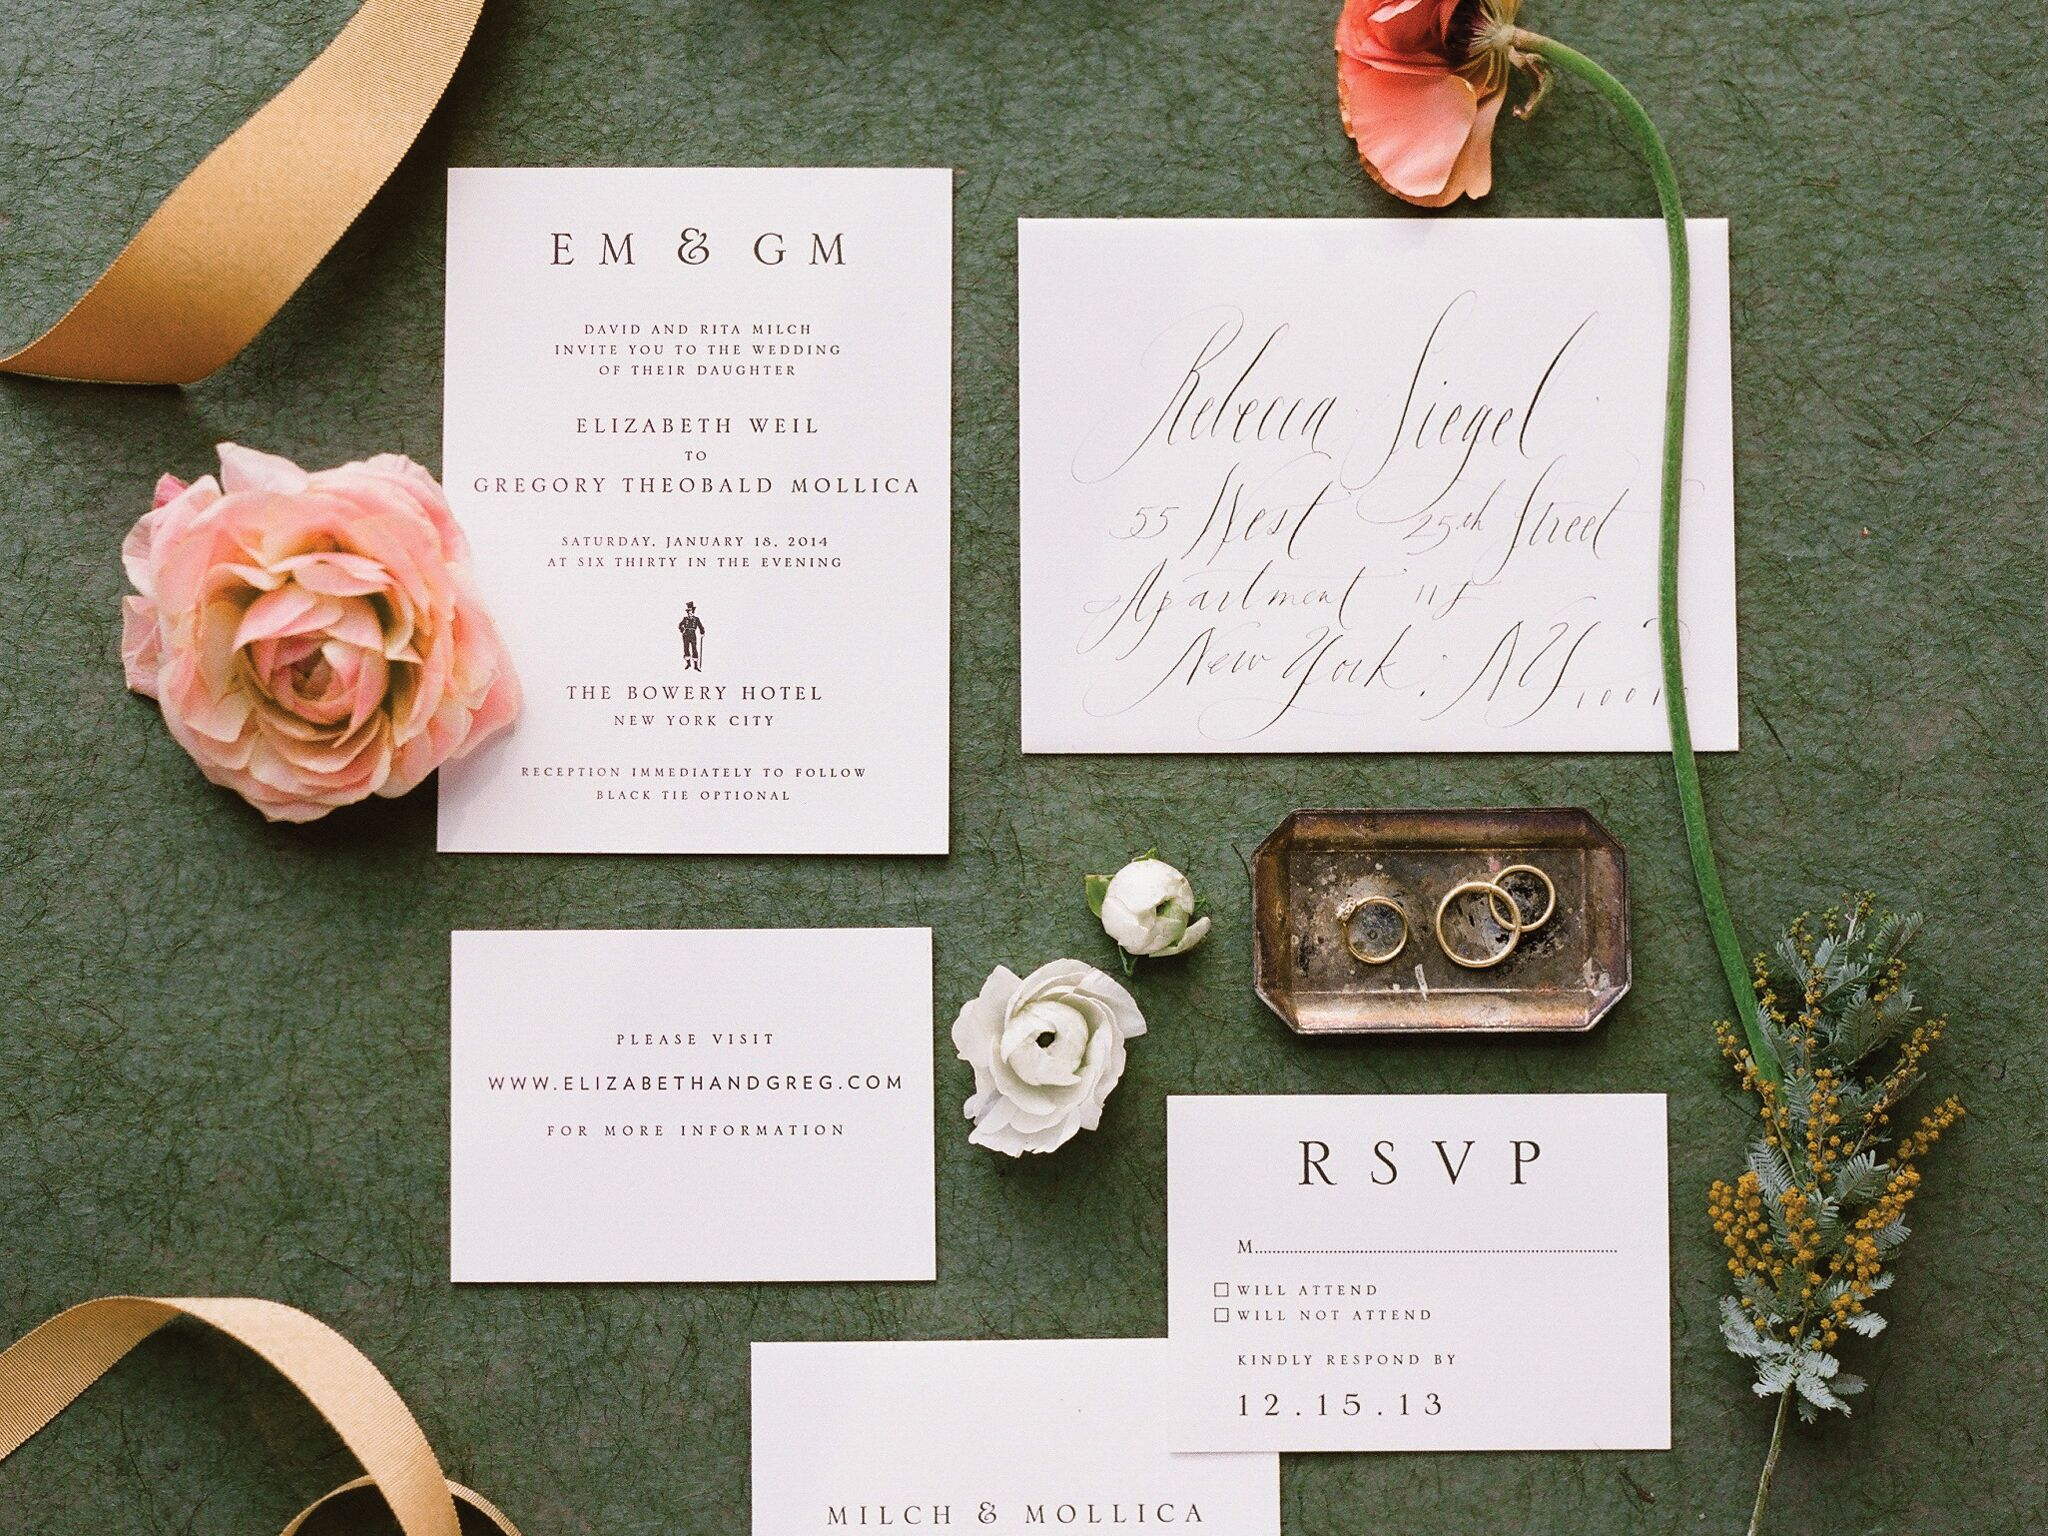 top 10 wedding invitation etiquette questions When Is It Appropriate To Send Out Wedding Invitations When Is It Appropriate To Send Out Wedding Invitations #1 when is it appropriate to send out wedding invitations